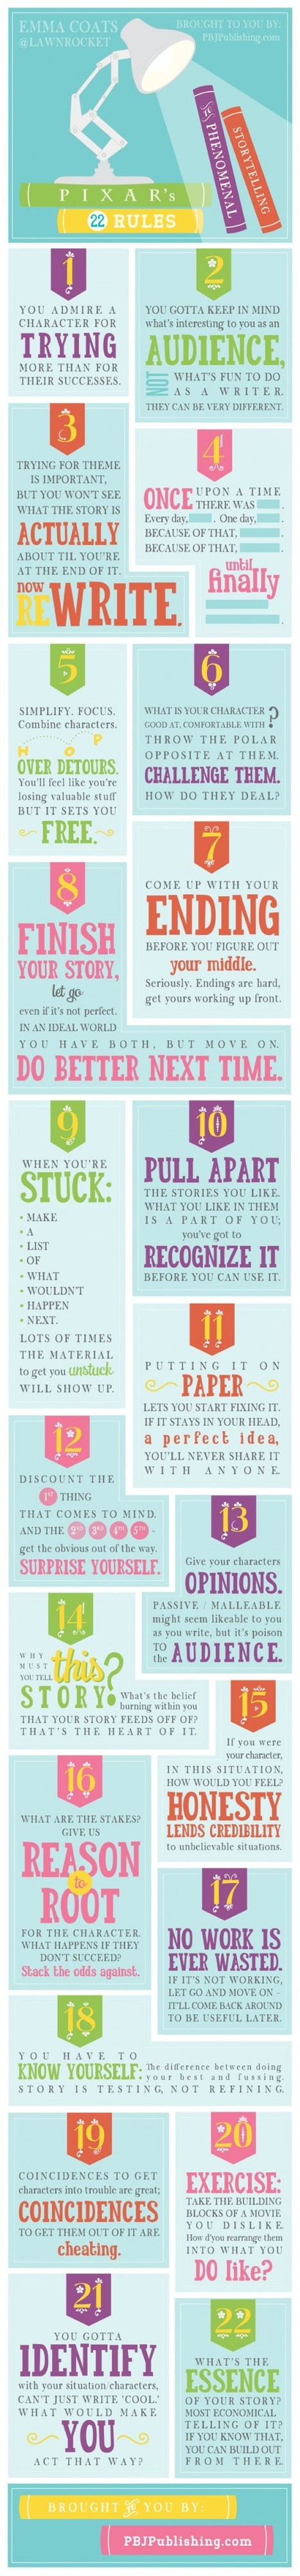 Pixar's 22 Rules to Phenomenal Storytelling [INFOGRAPHIC] | Story School | Scoop.it